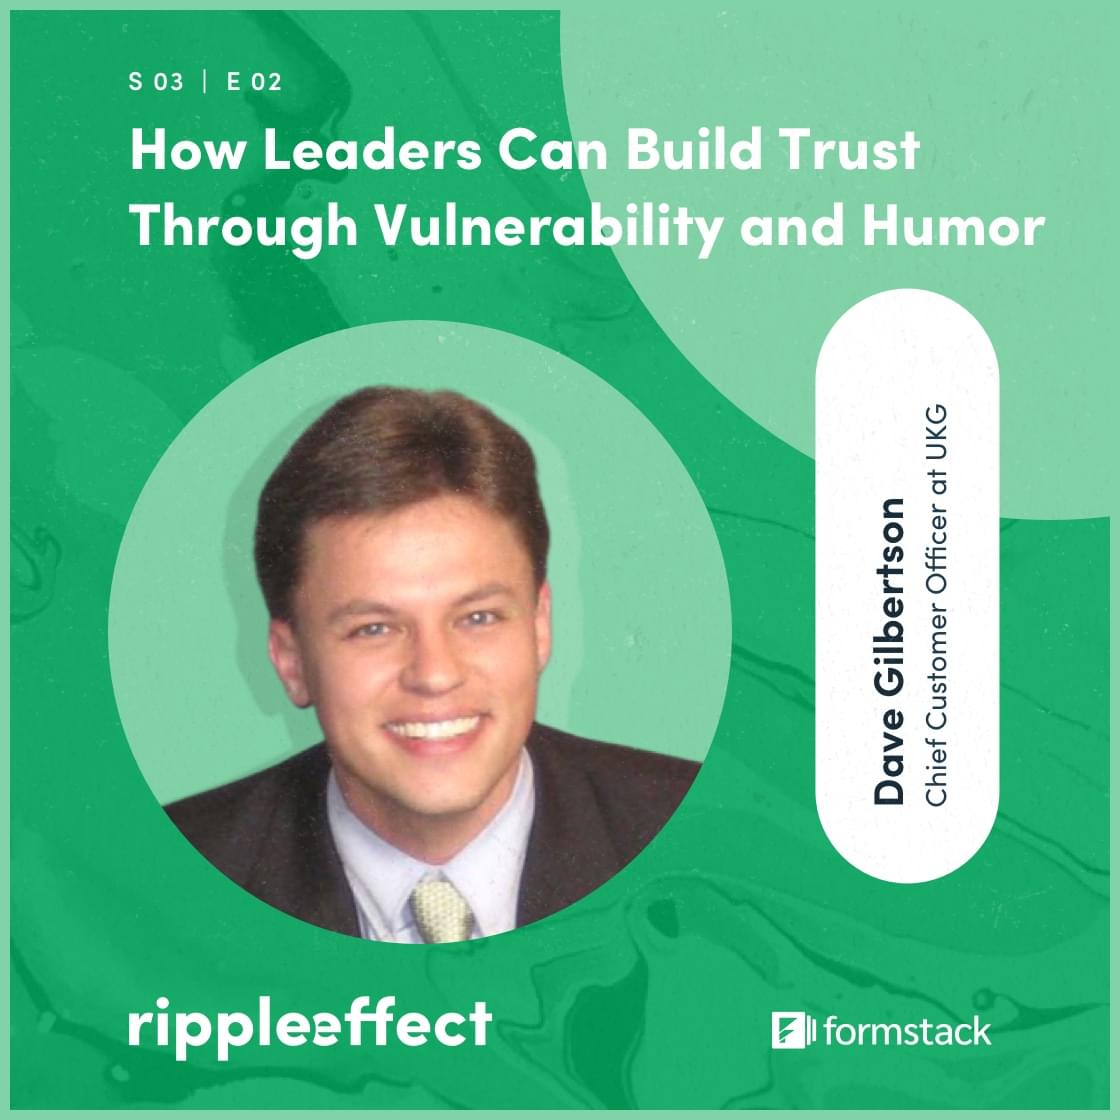 cover image of the Ripple Effect podcast episode How leaders Can Build Trust Through Vulnerability and Humor